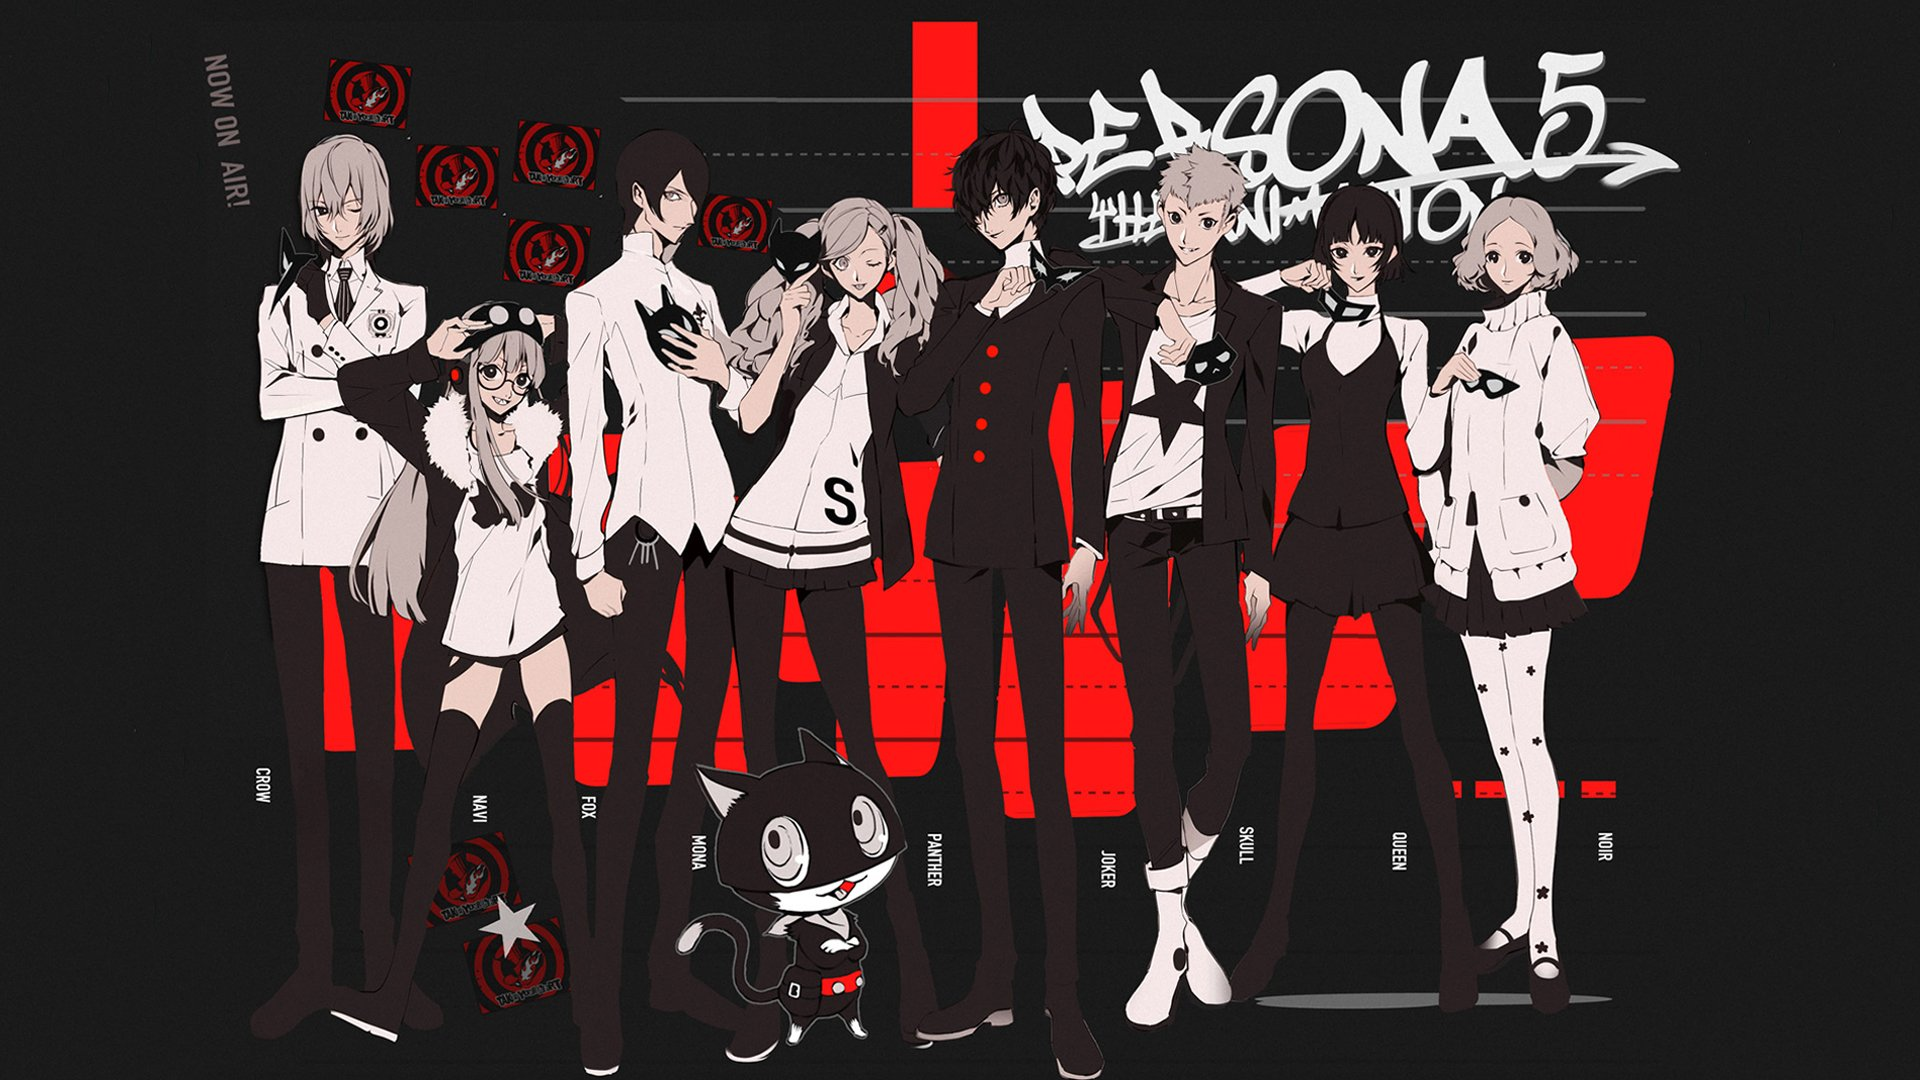 Persona 5 - Party HD Wallpaper | Background Image ...